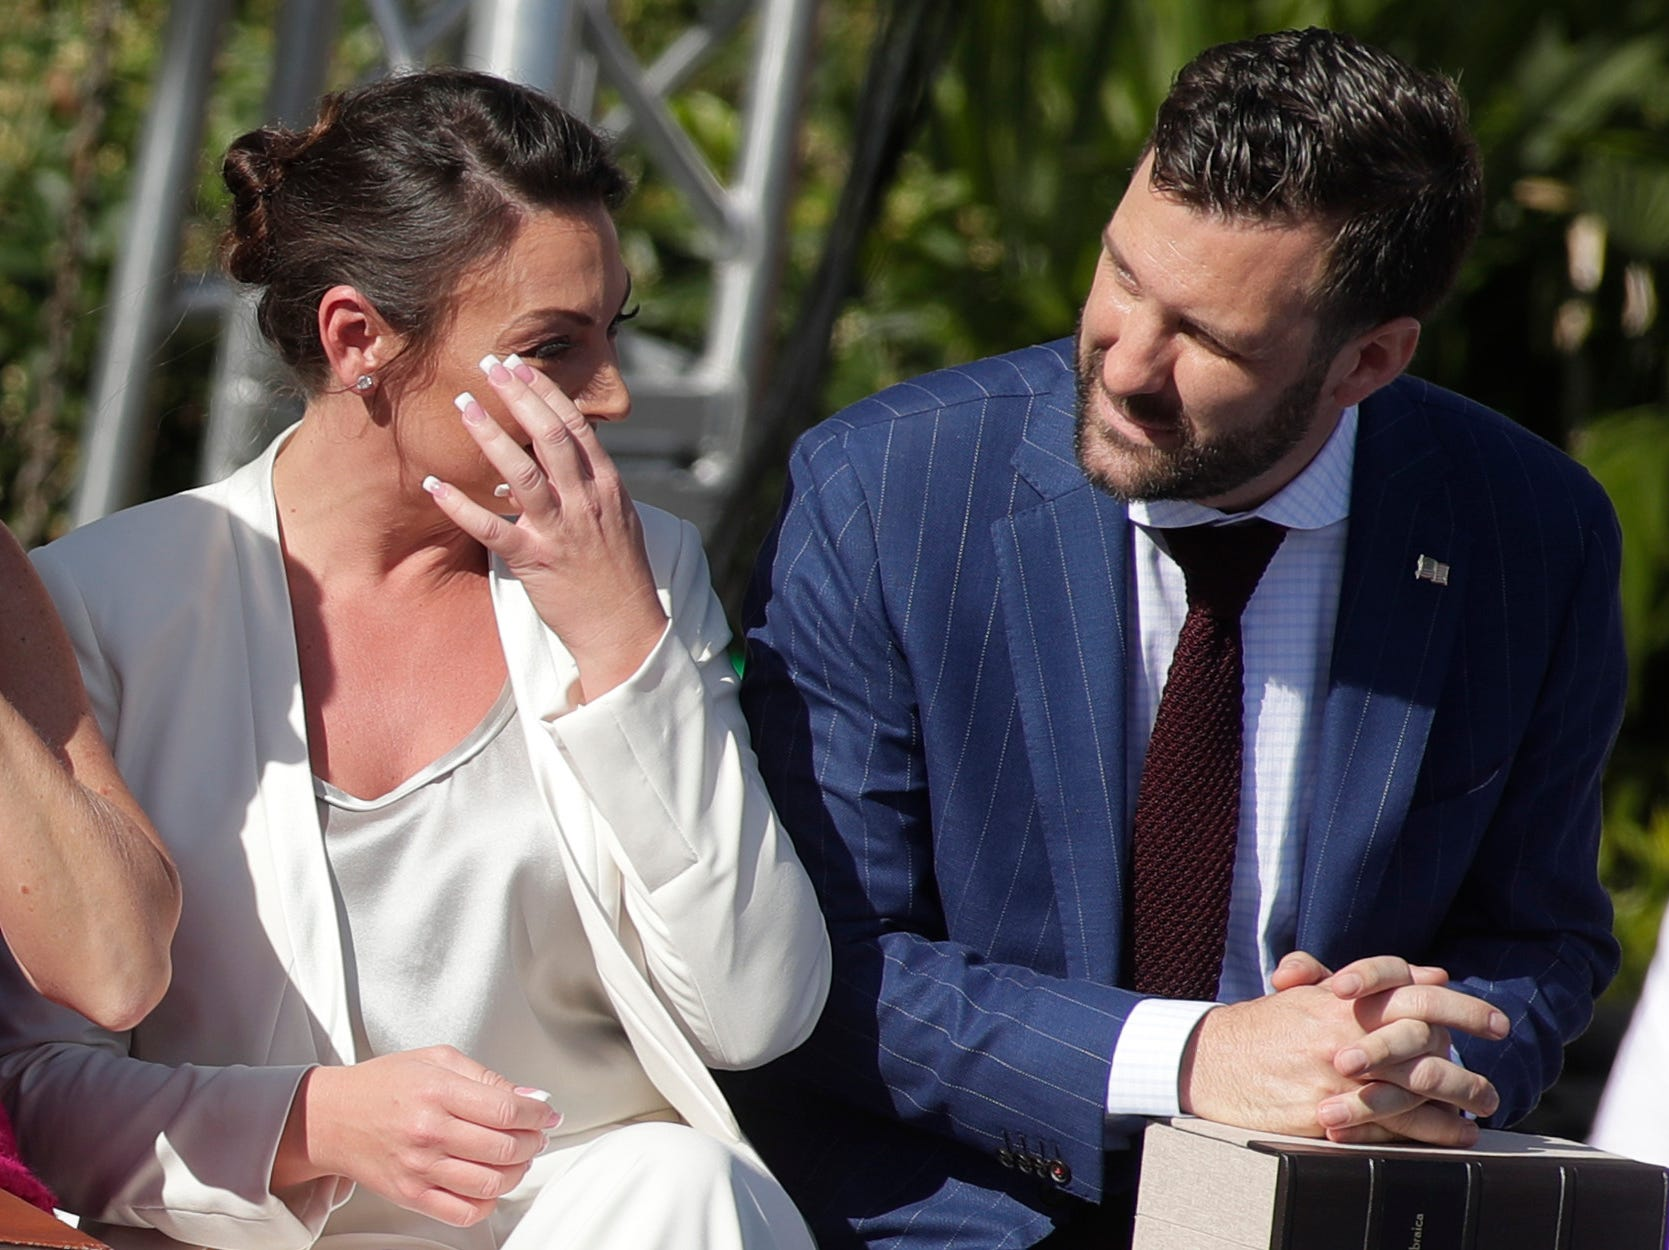 Commissioner of Agriculture and Consumer Services Nikki Fried wipes her eye after taking the oath of office during the 2019 inauguration ceremony on the steps of the Historic Capitol Building in Tallahassee Tuesday, Jan. 8, 2019.